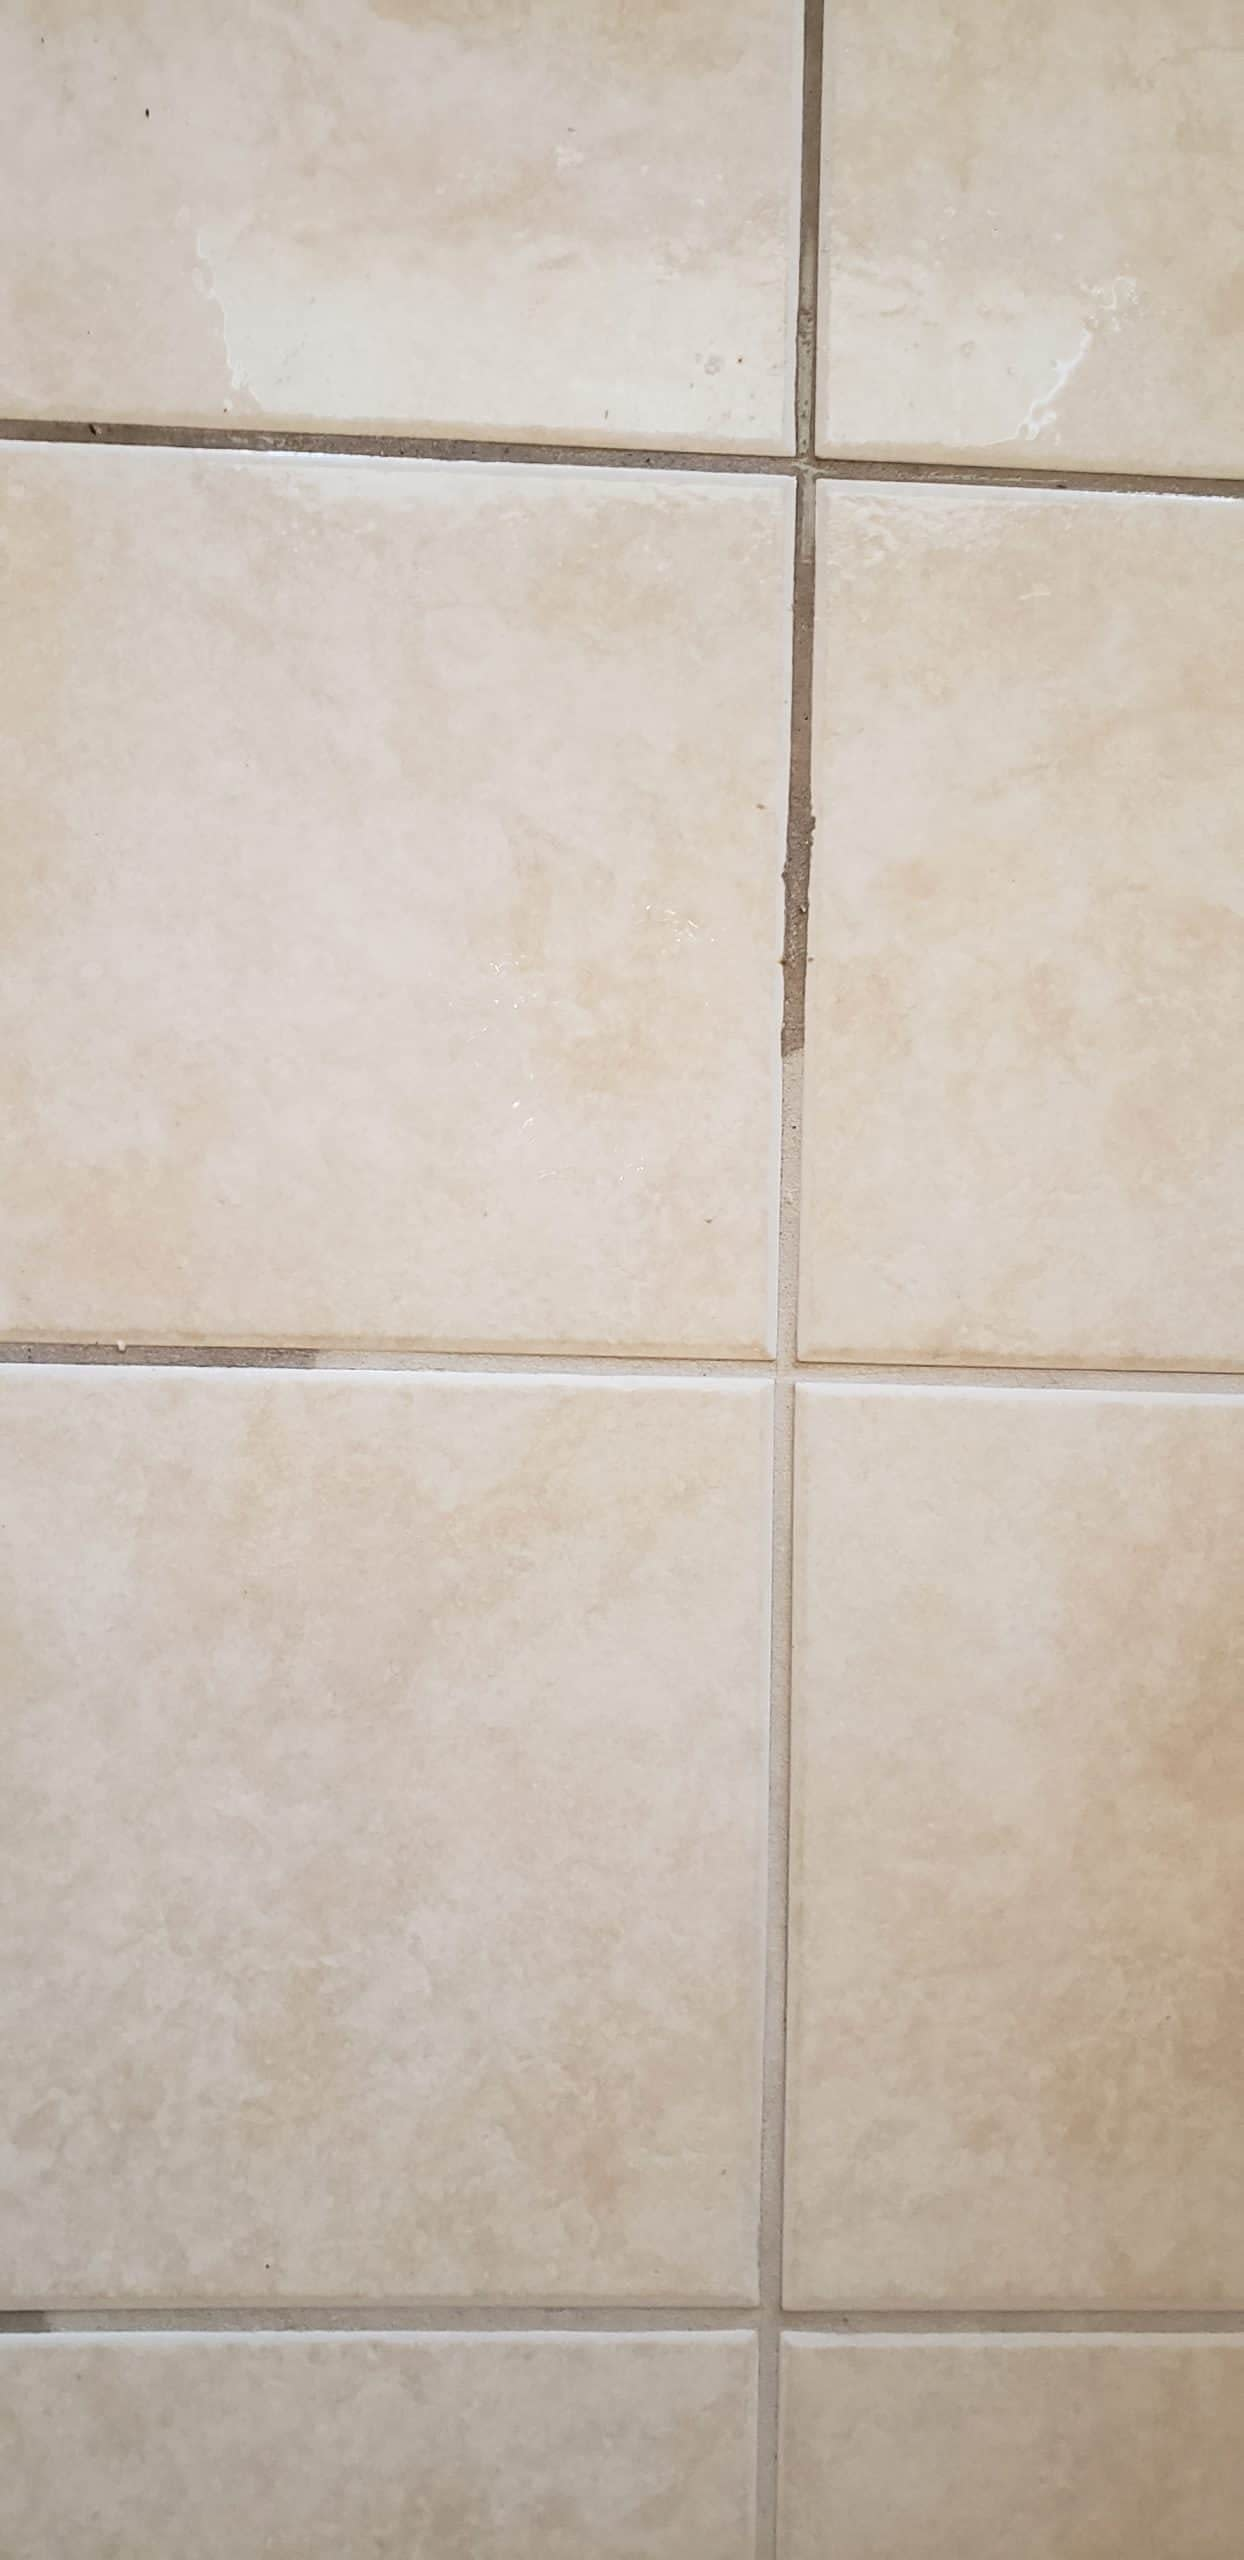 Ambler, PA before and after tile cleaning